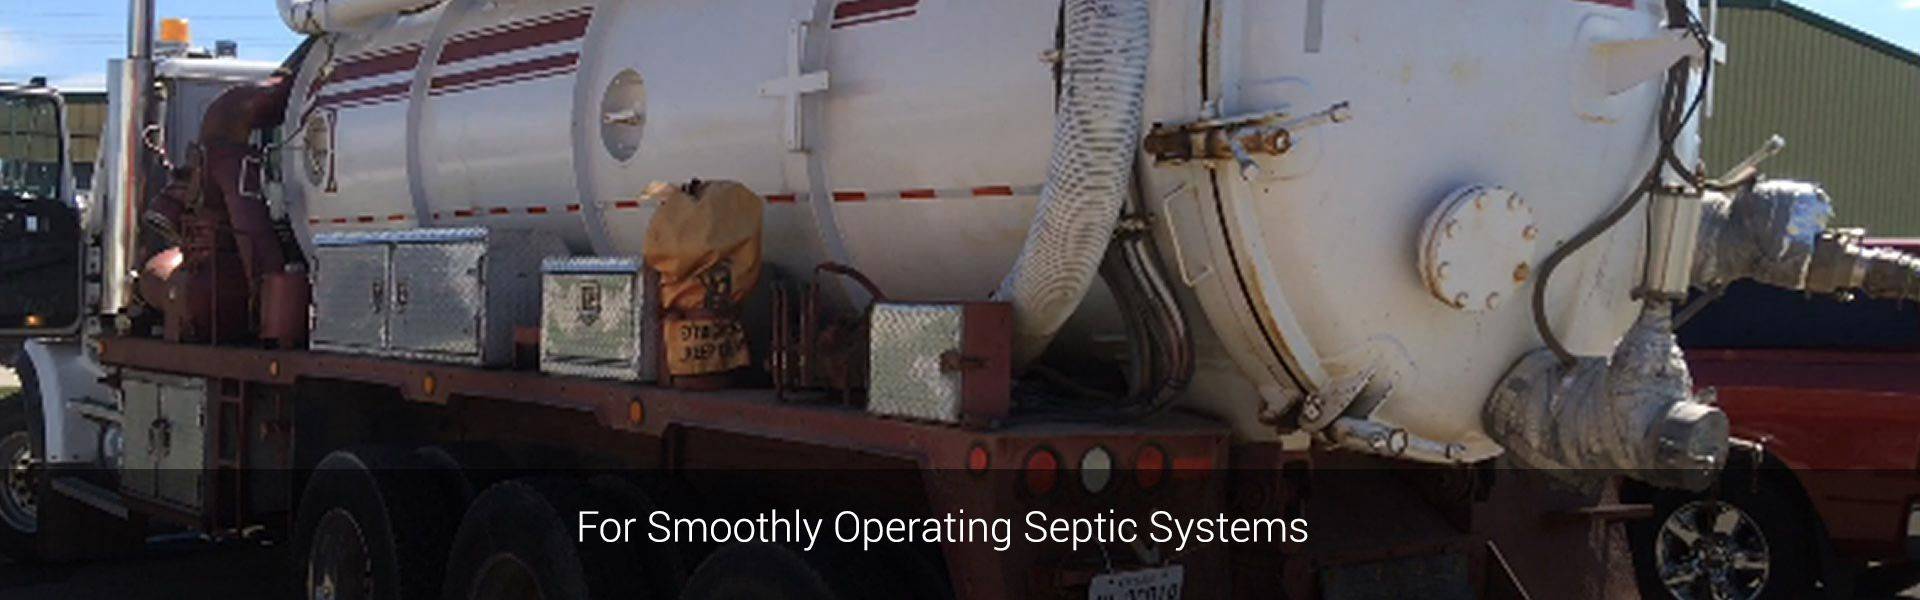 For Smoothly Operating Septic Systems | Pump truck